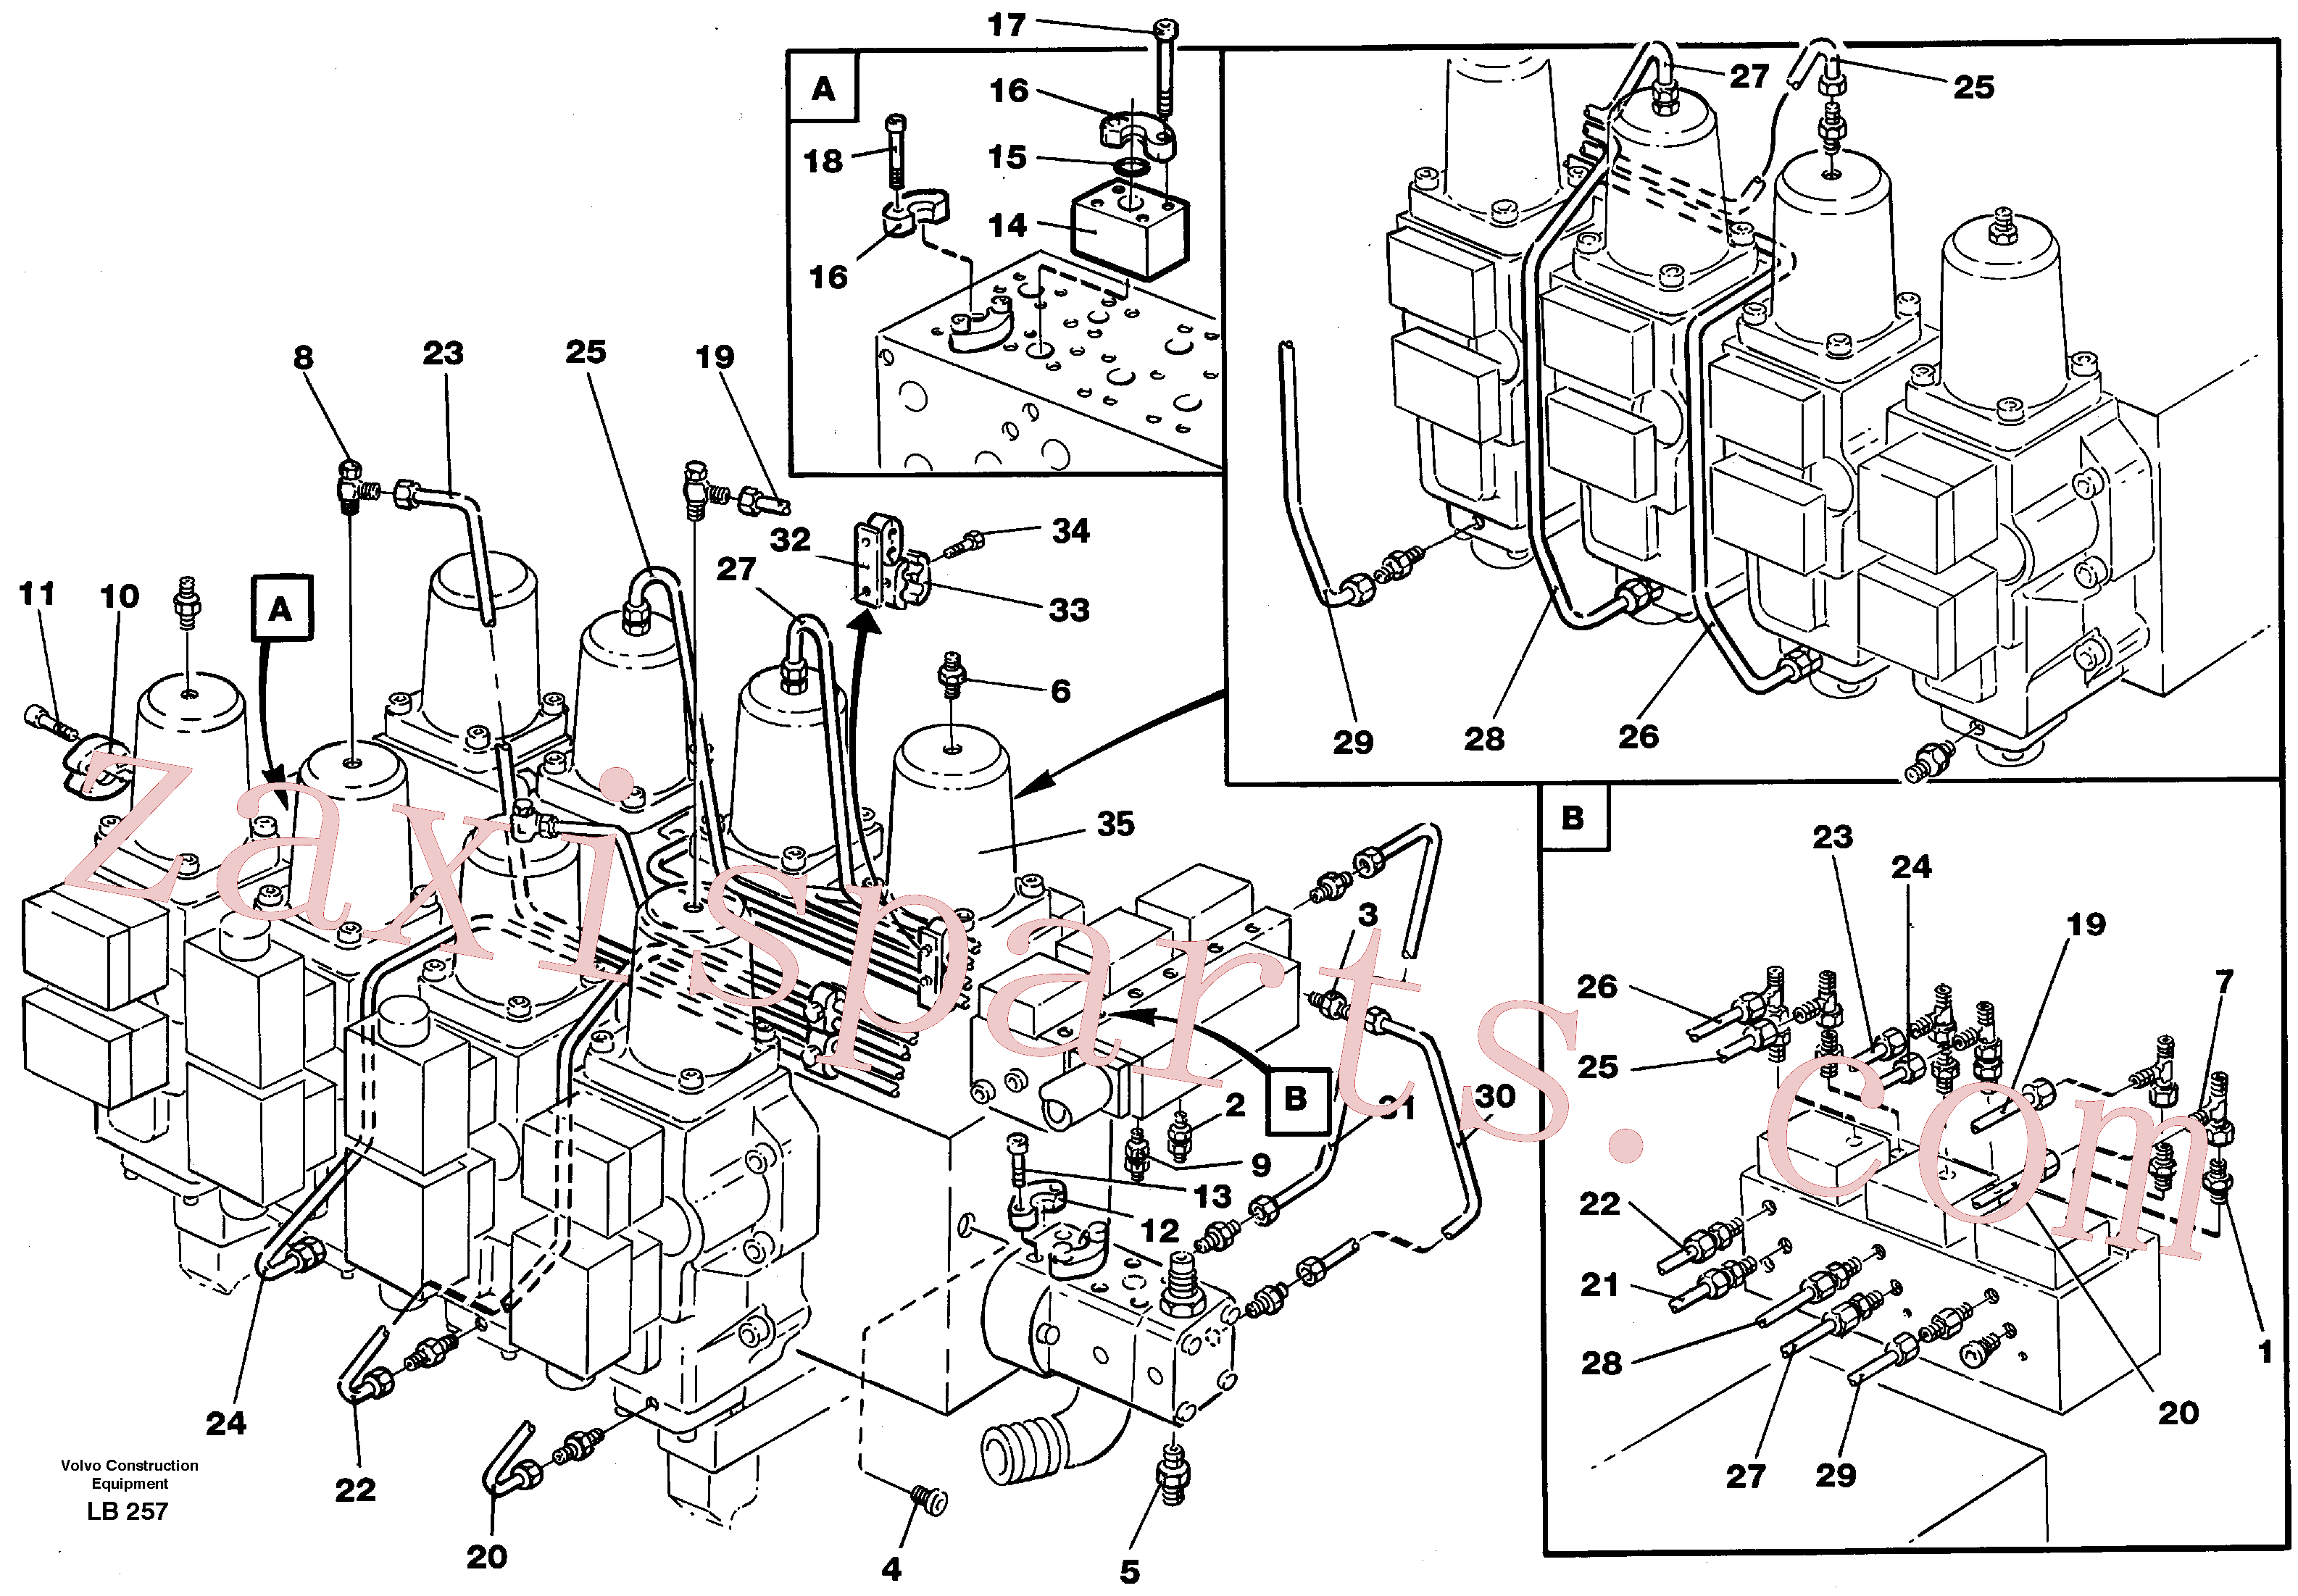 VOE14261299 for Volvo Main valve assembly, tubes connections(LB257 assembly)